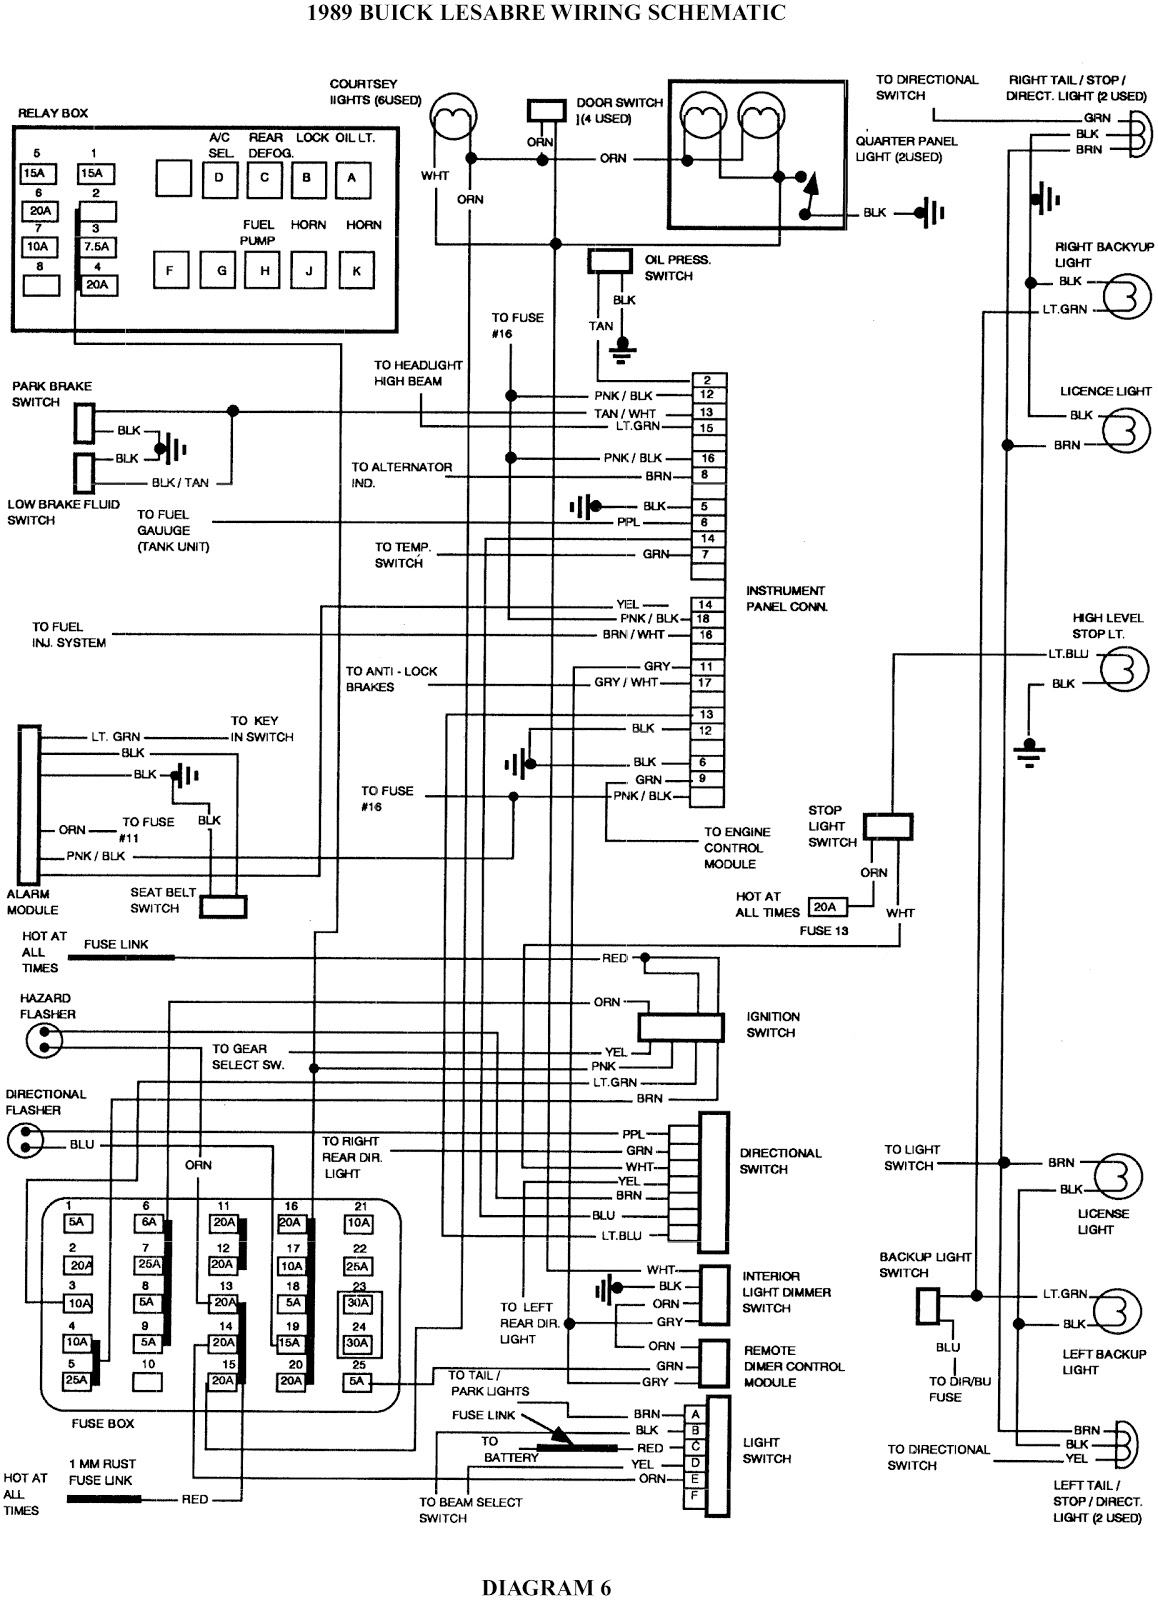 Transformer Diagram And How It Works 5 1 Surround Sound Setup 1989 Buick Lesabre Wiring Schematic | Diagrams Solutions